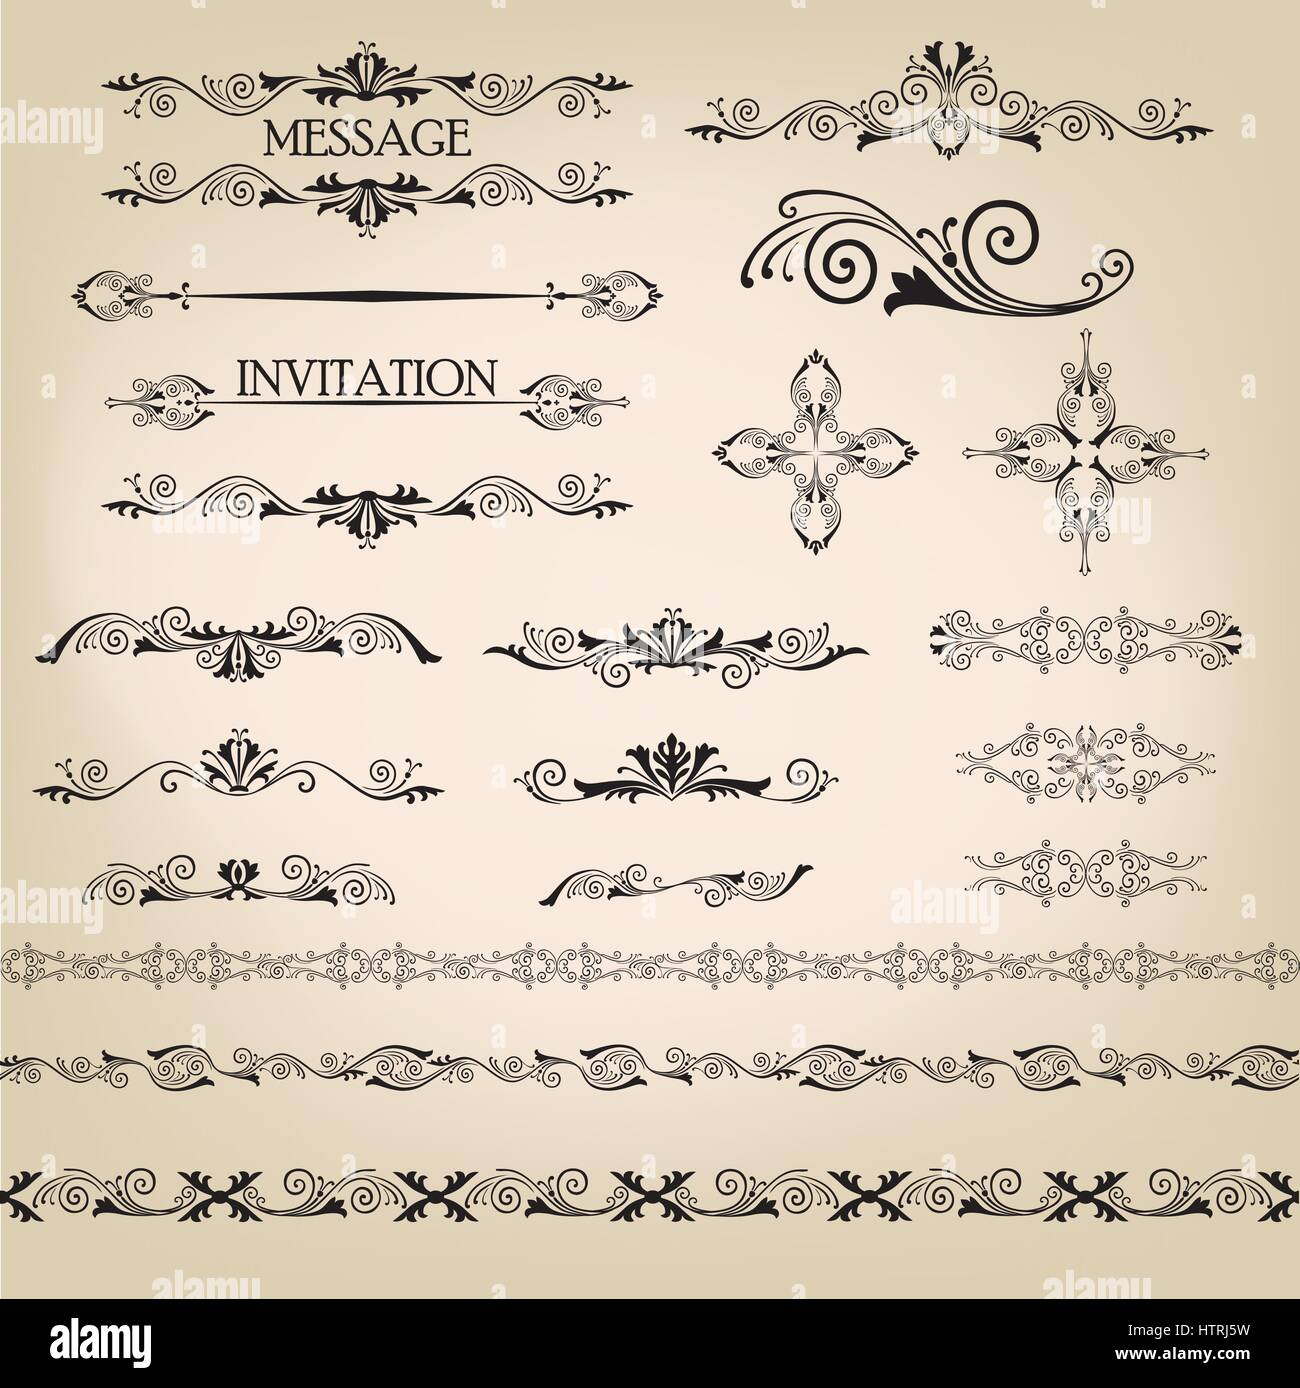 Calligraphic Flourish Design Elements Page Decoration Doodle Vignette Set In Retro Style Elegant Vintage Borders And Dividers For Greeting Card Ret